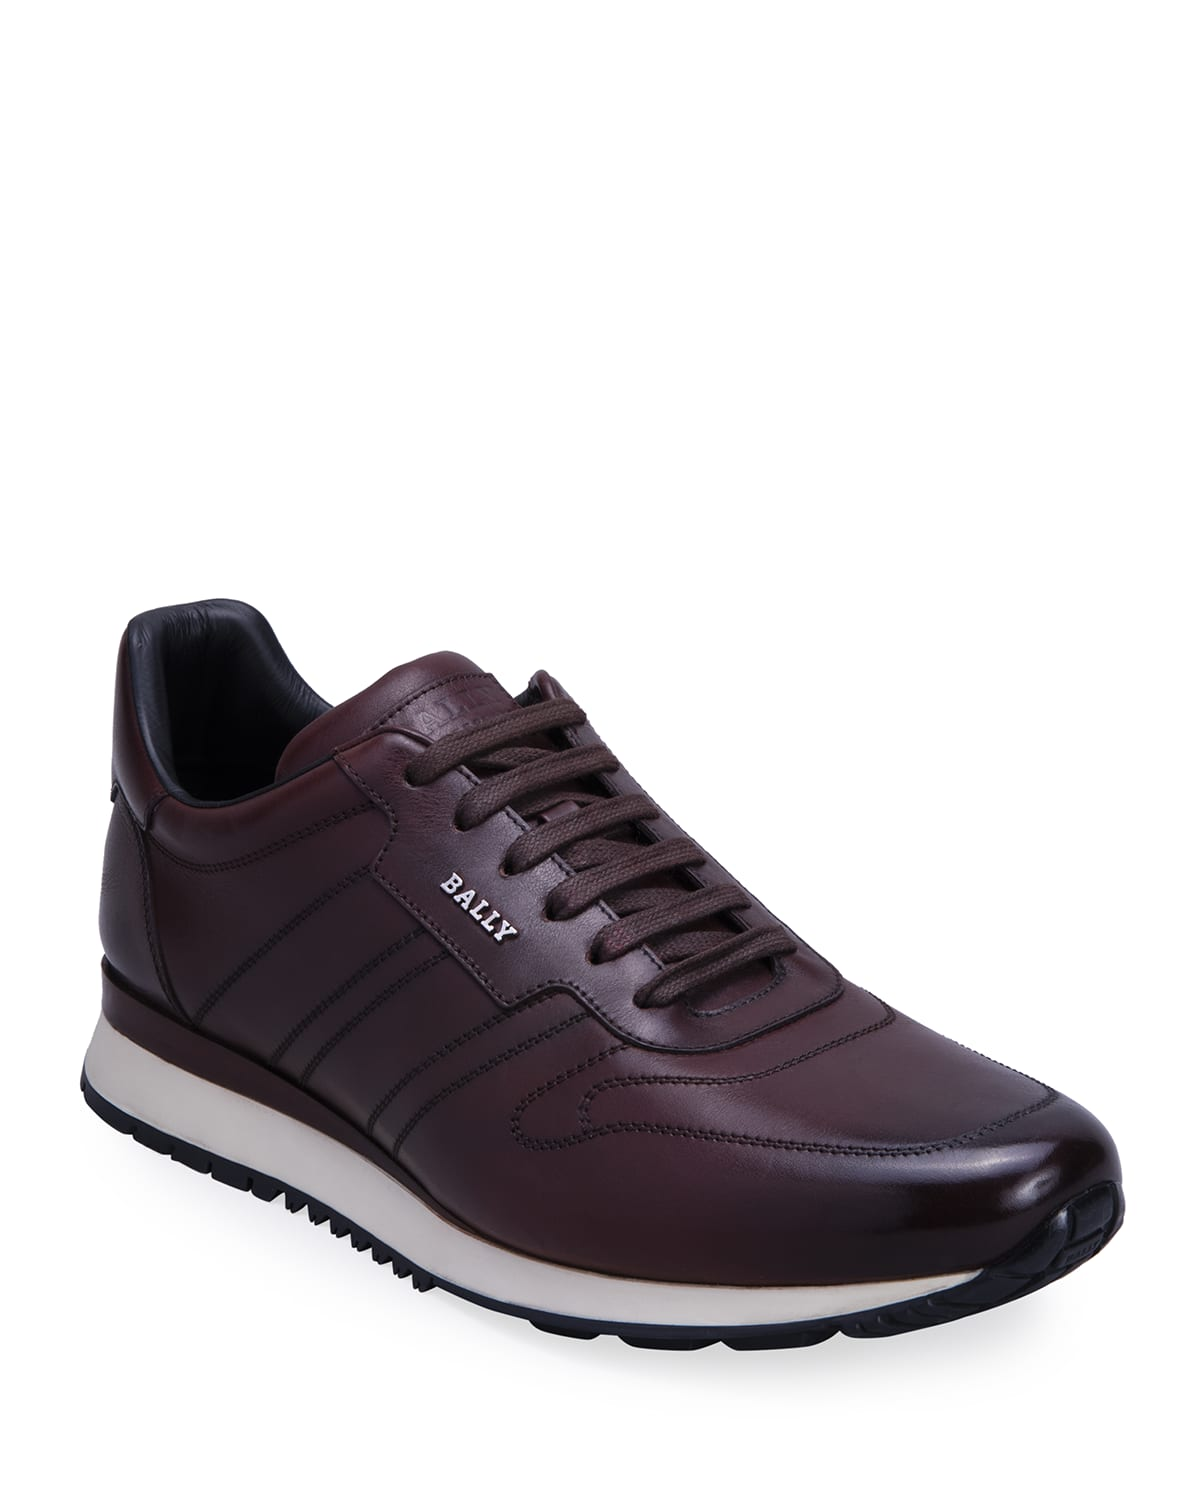 Men's Assio Burnish Leather Sneakers